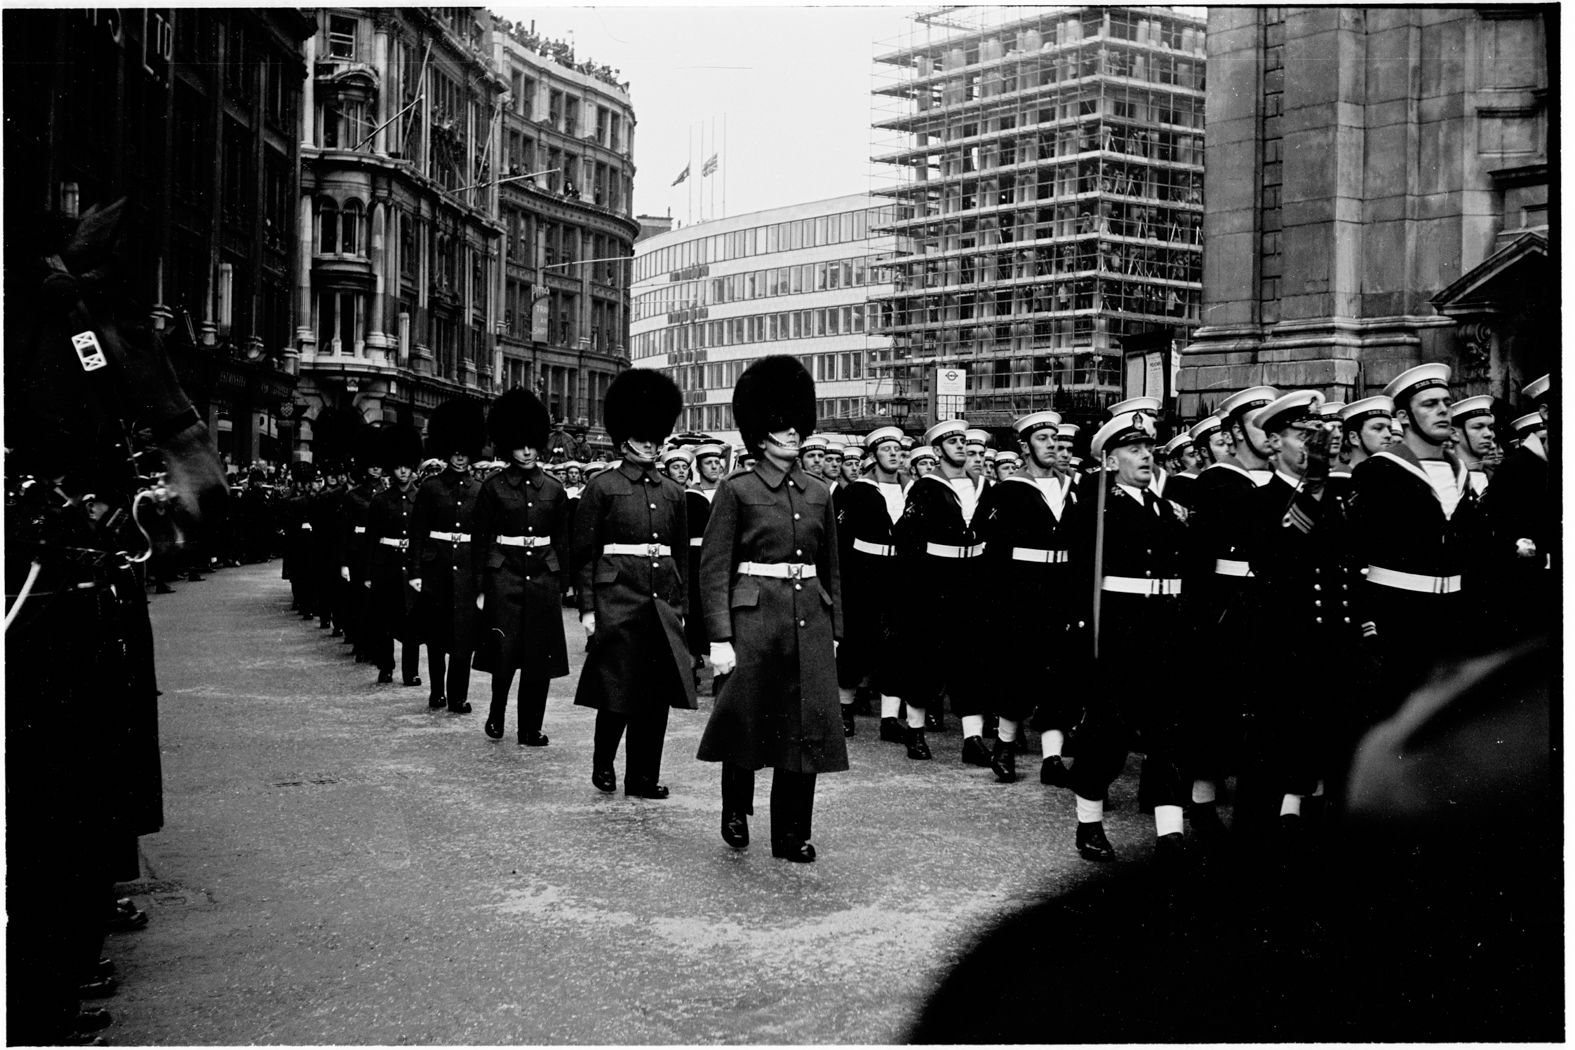 Winston Churchill's Funeral, St Paul's Cathedral